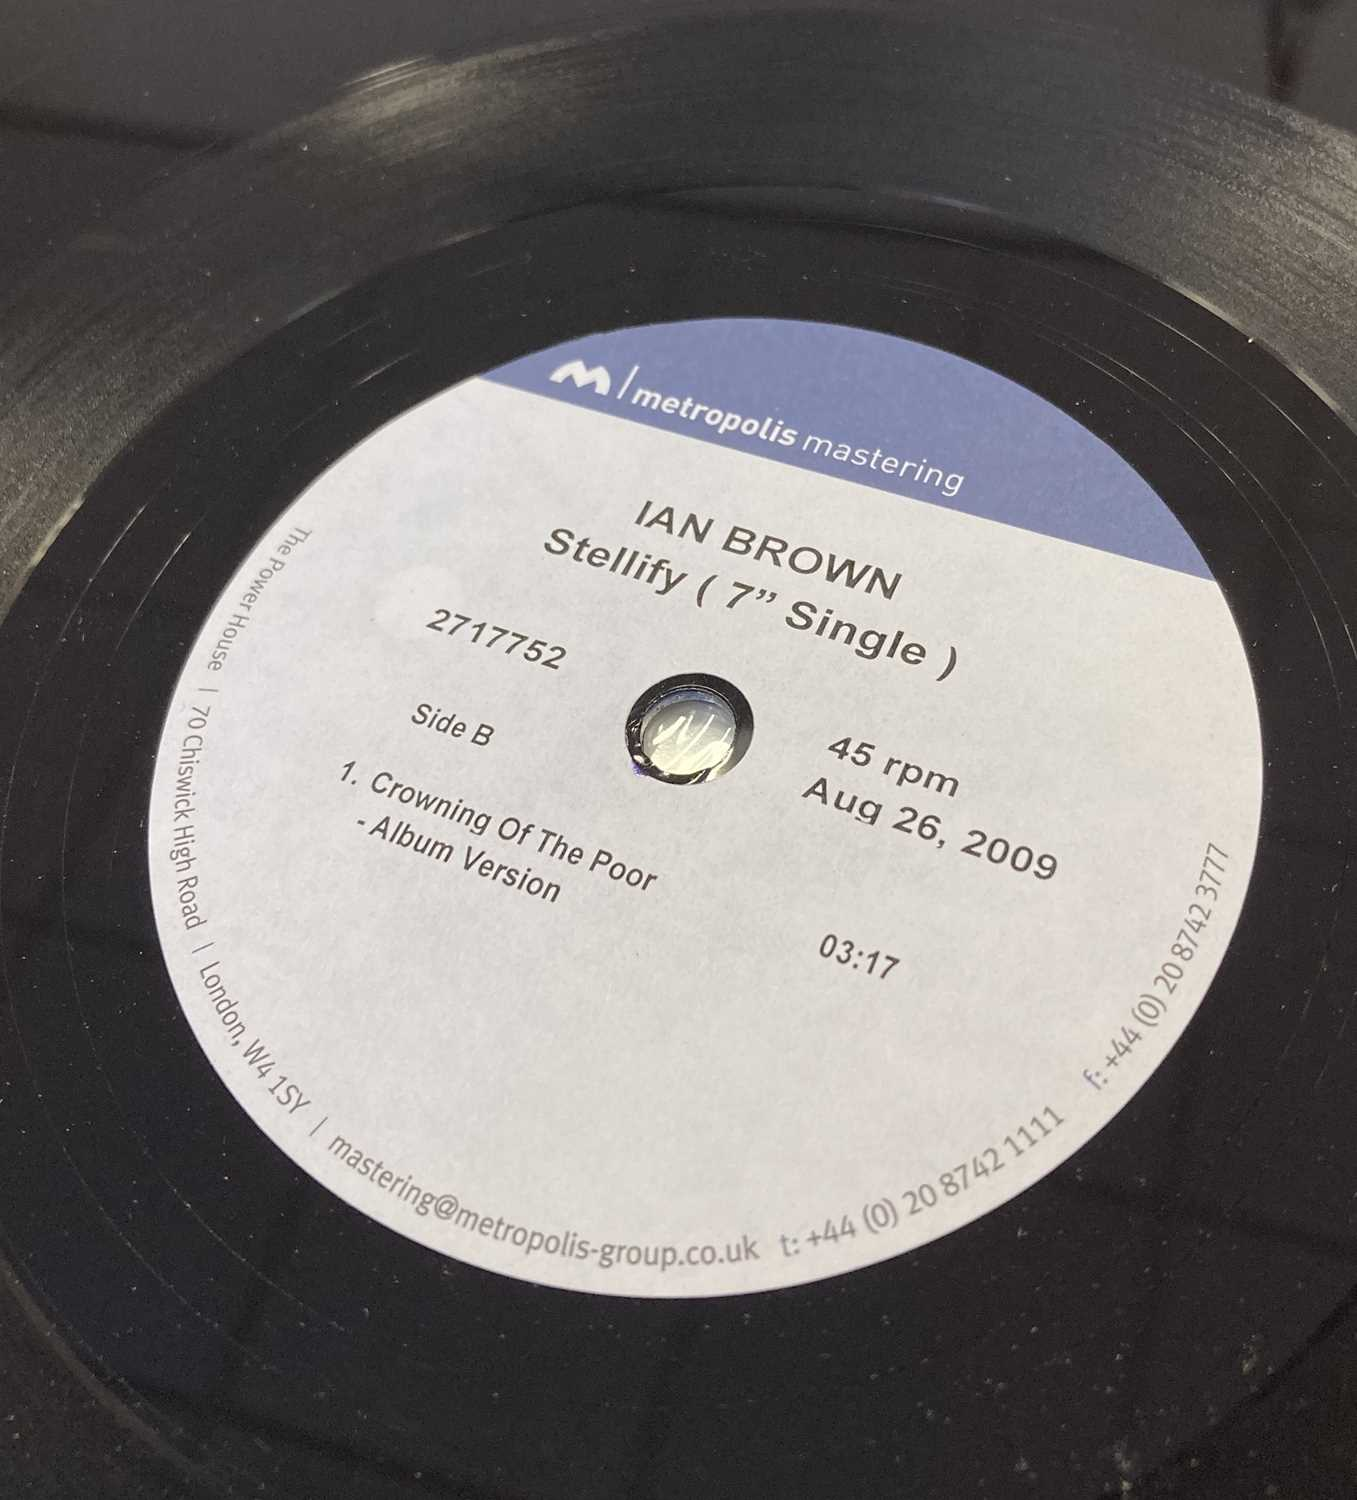 "IAN BROWN - STELLIFY 7"" ACETATE RECORDING (2717752) - Image 3 of 4"